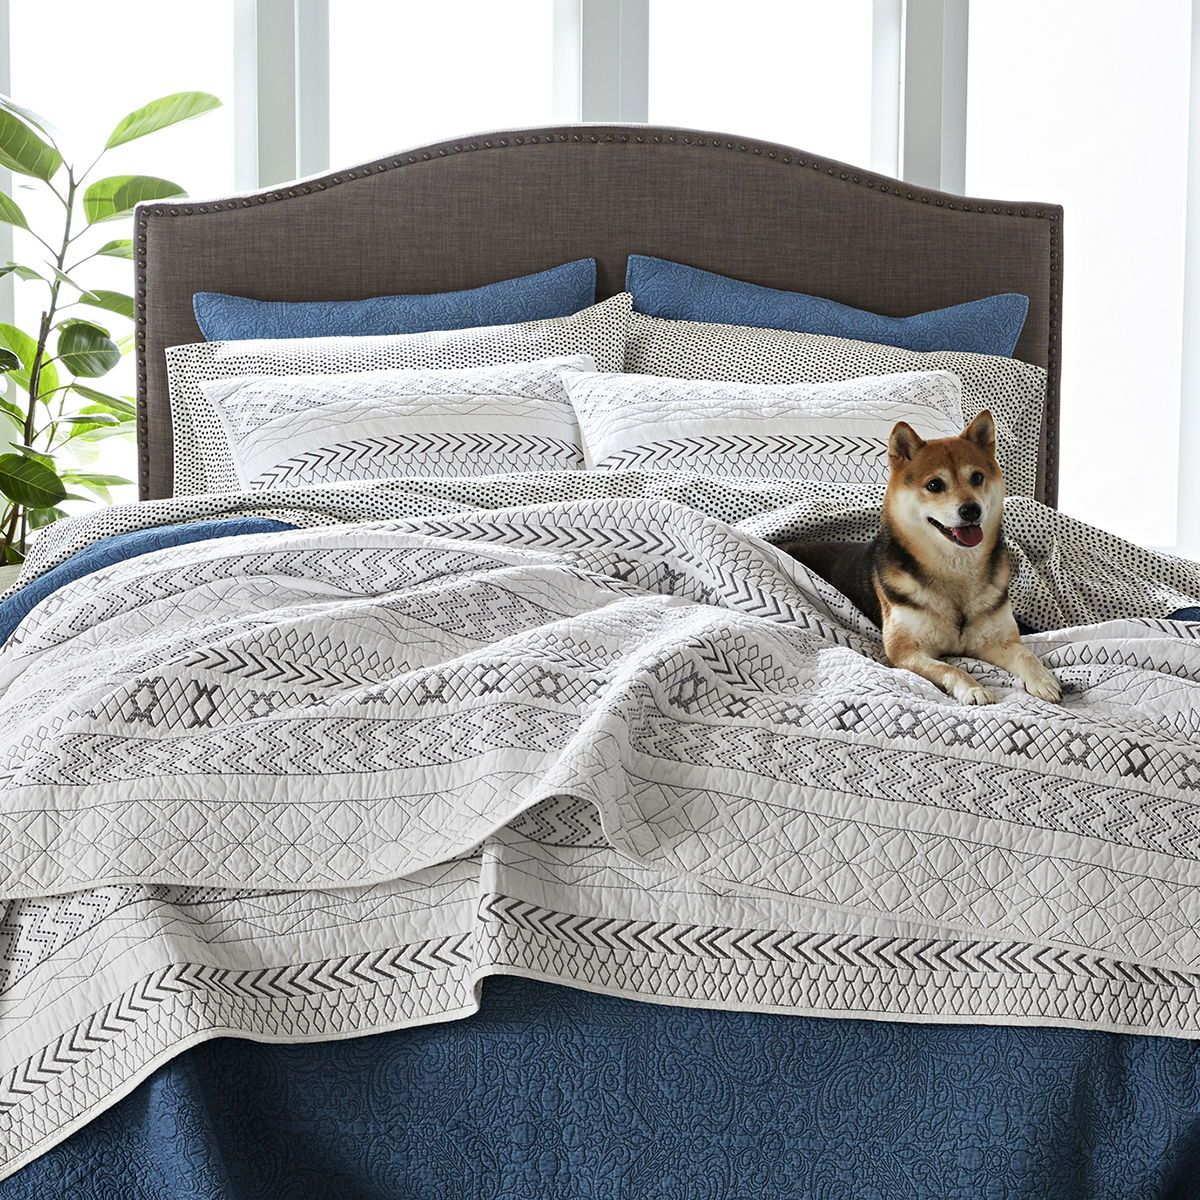 Better Homes Gardens Embroidered Stripe King Quilt Walmart Com In 2020 King Quilt Classic Bed Covers Bedroom Decor